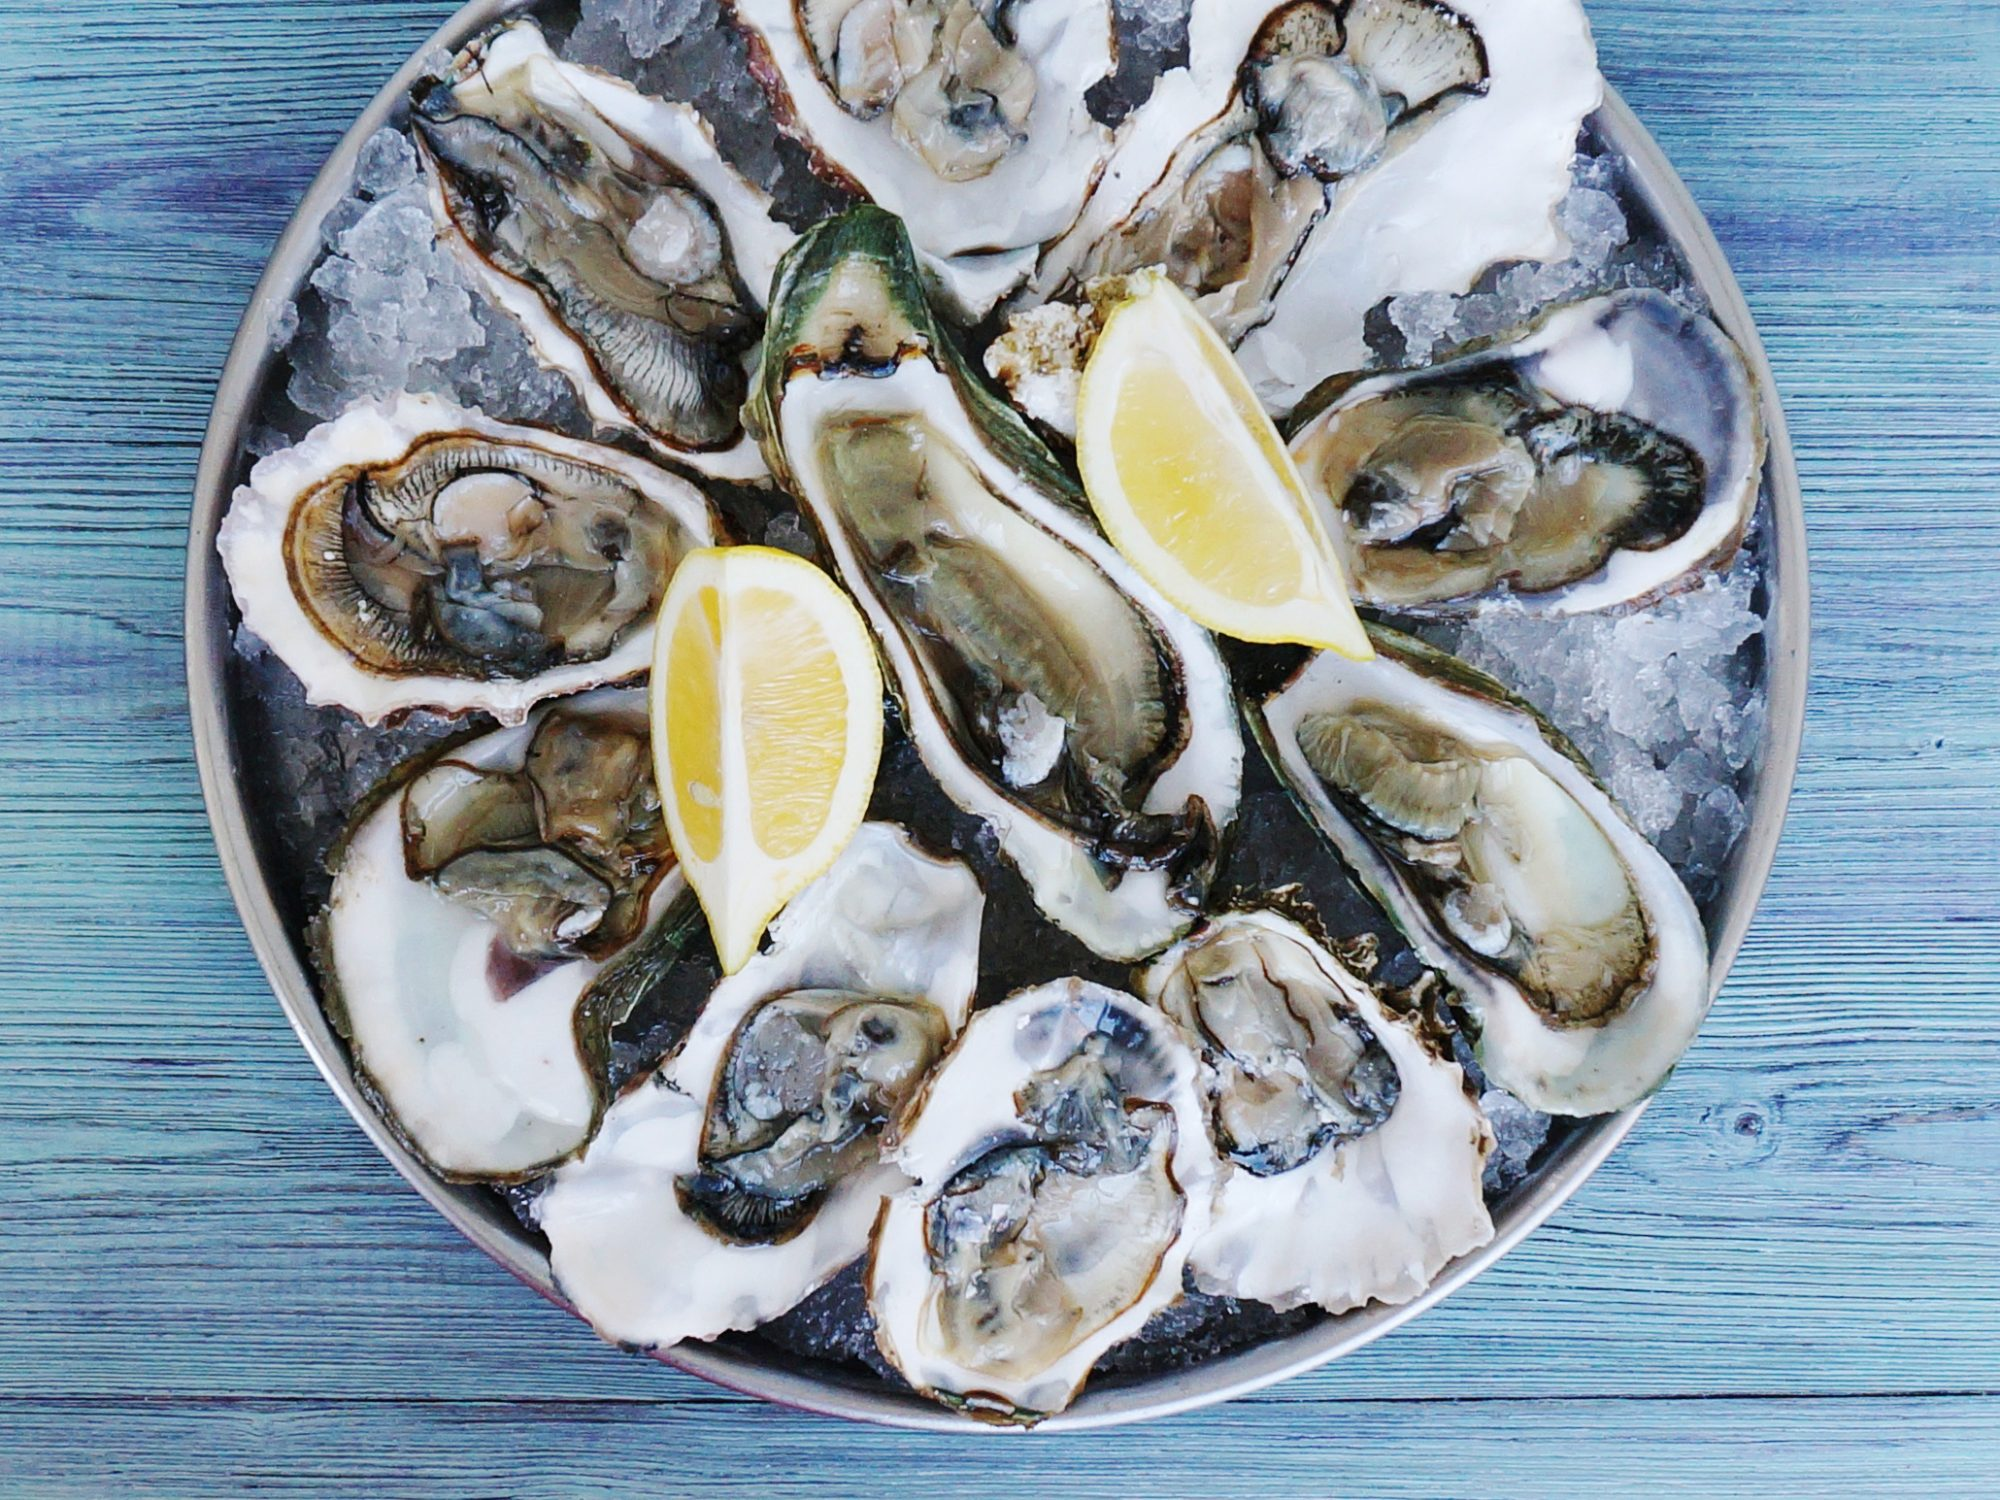 Oyster-Related Illness On the Rise, Likely Due to Pacific Northwest Heat Wave